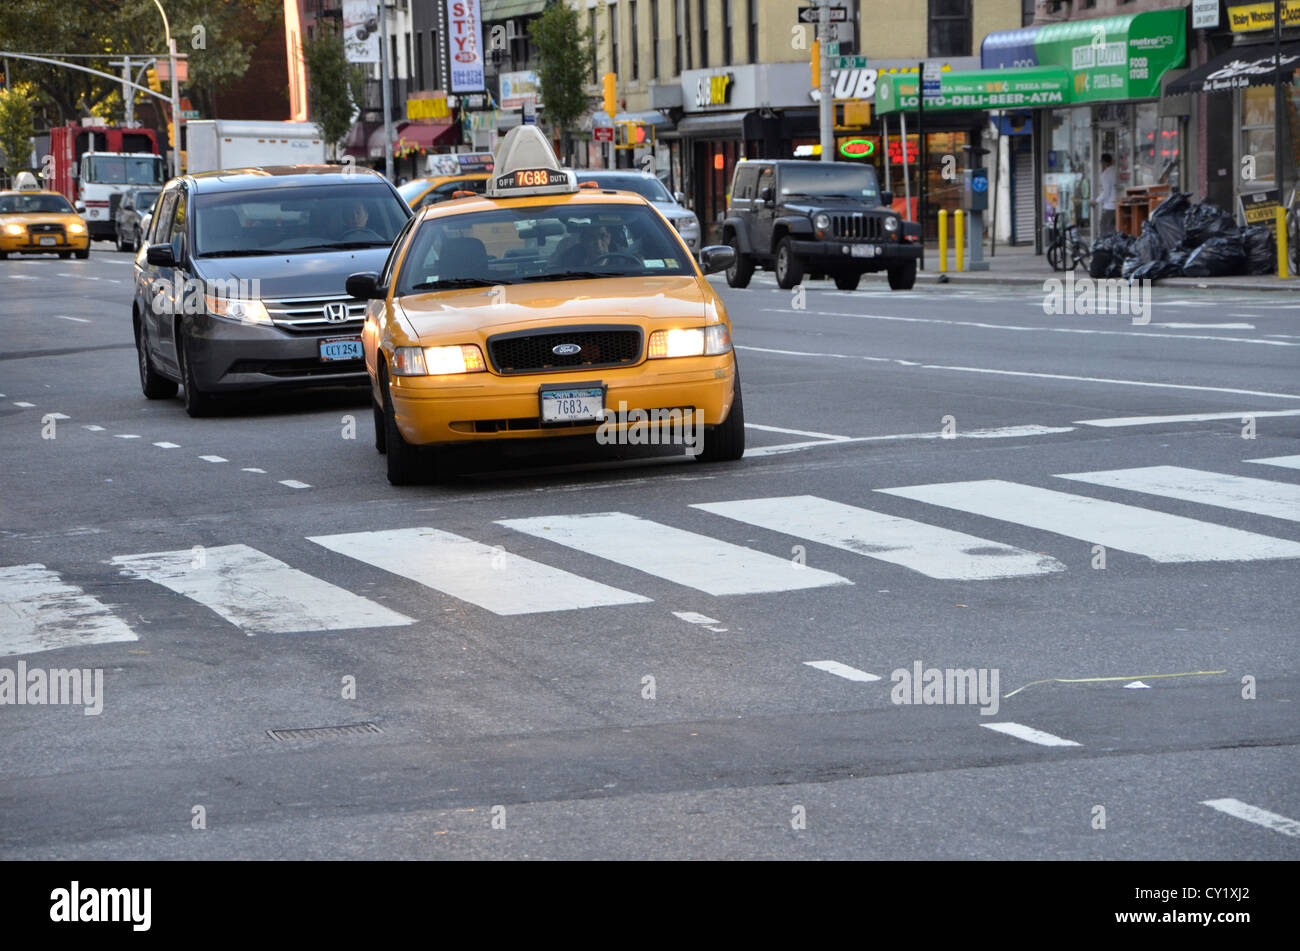 taxicab driving in New York City - Stock Image